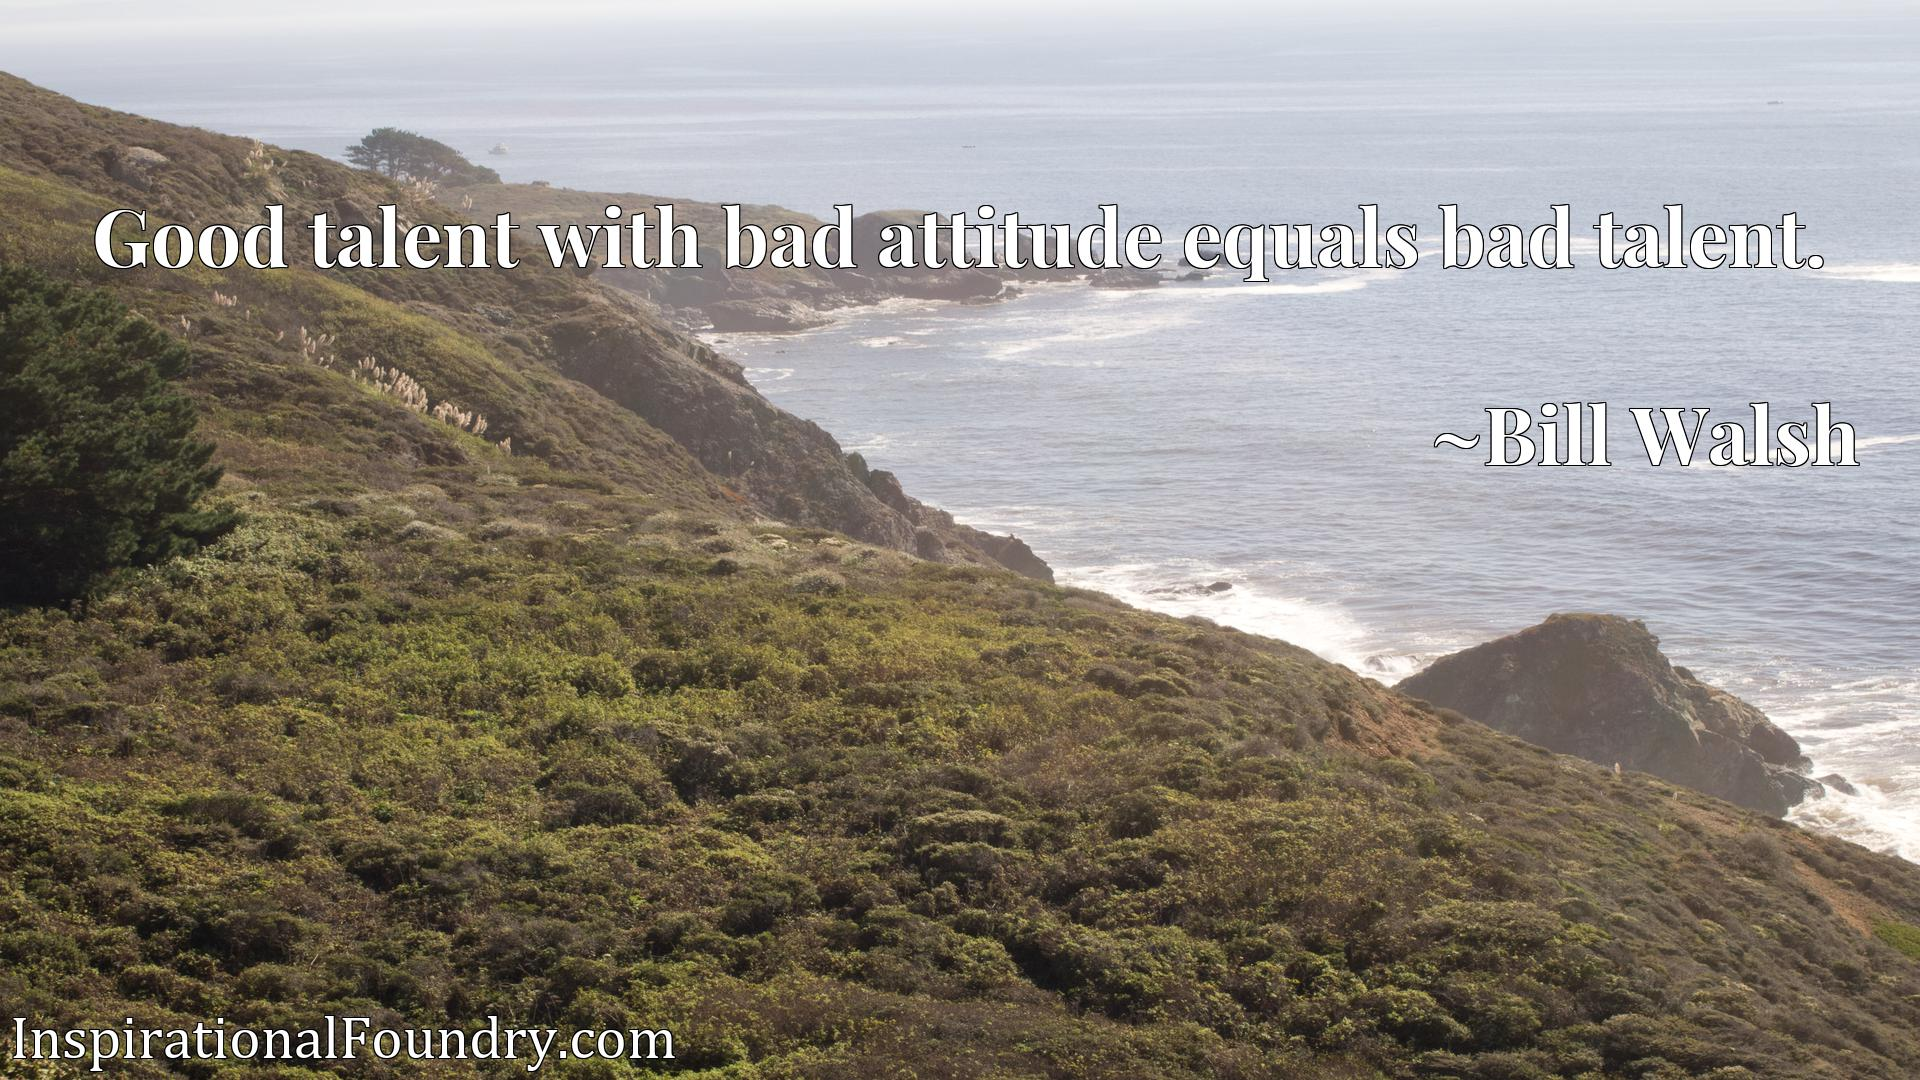 Good talent with bad attitude equals bad talent.